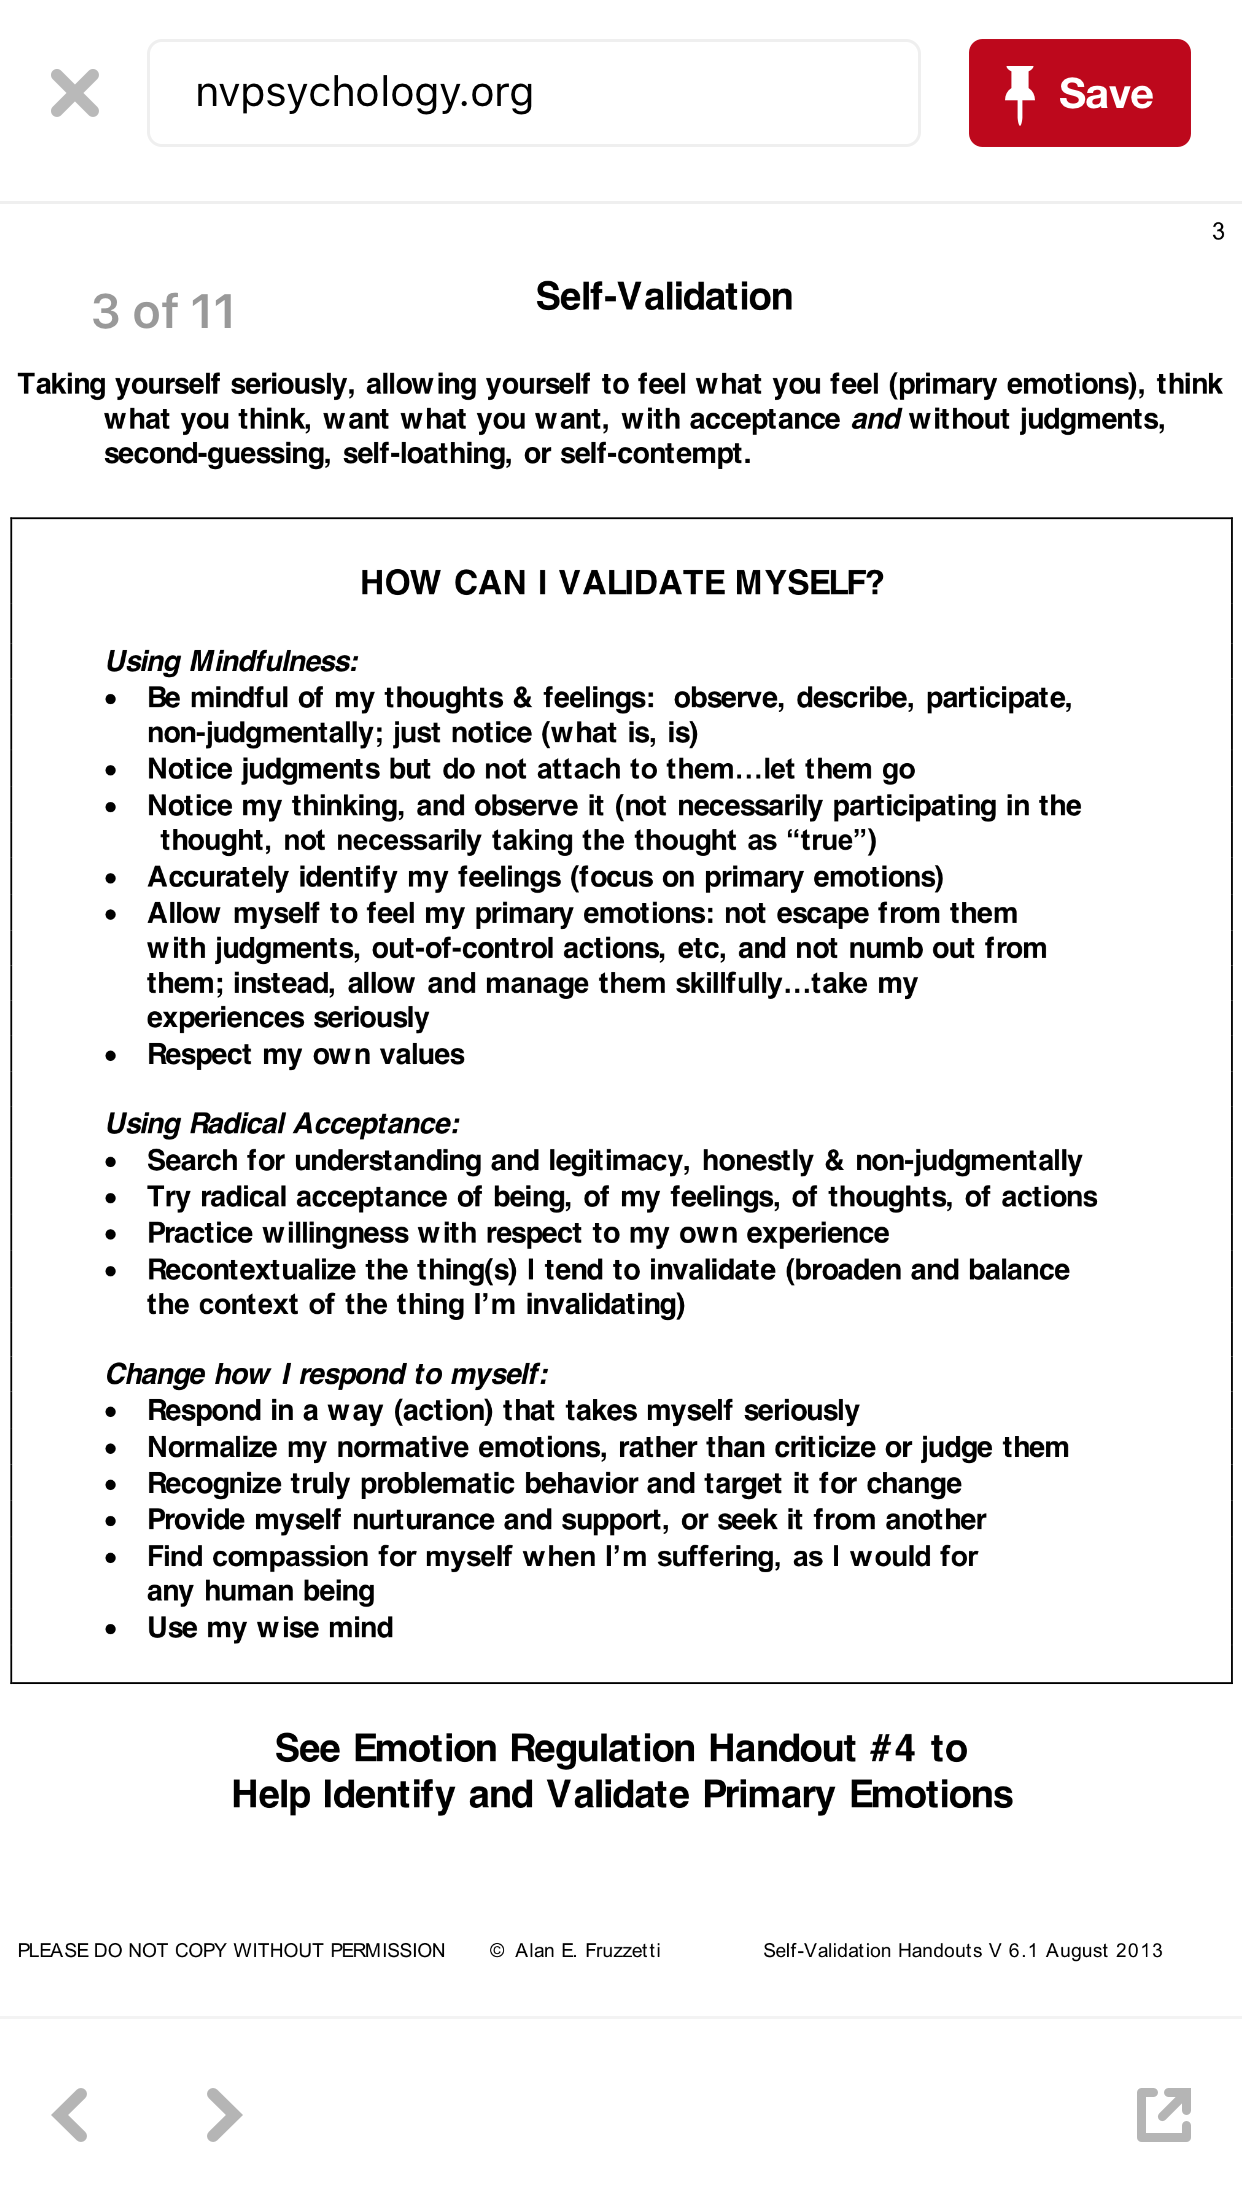 Validation Handout